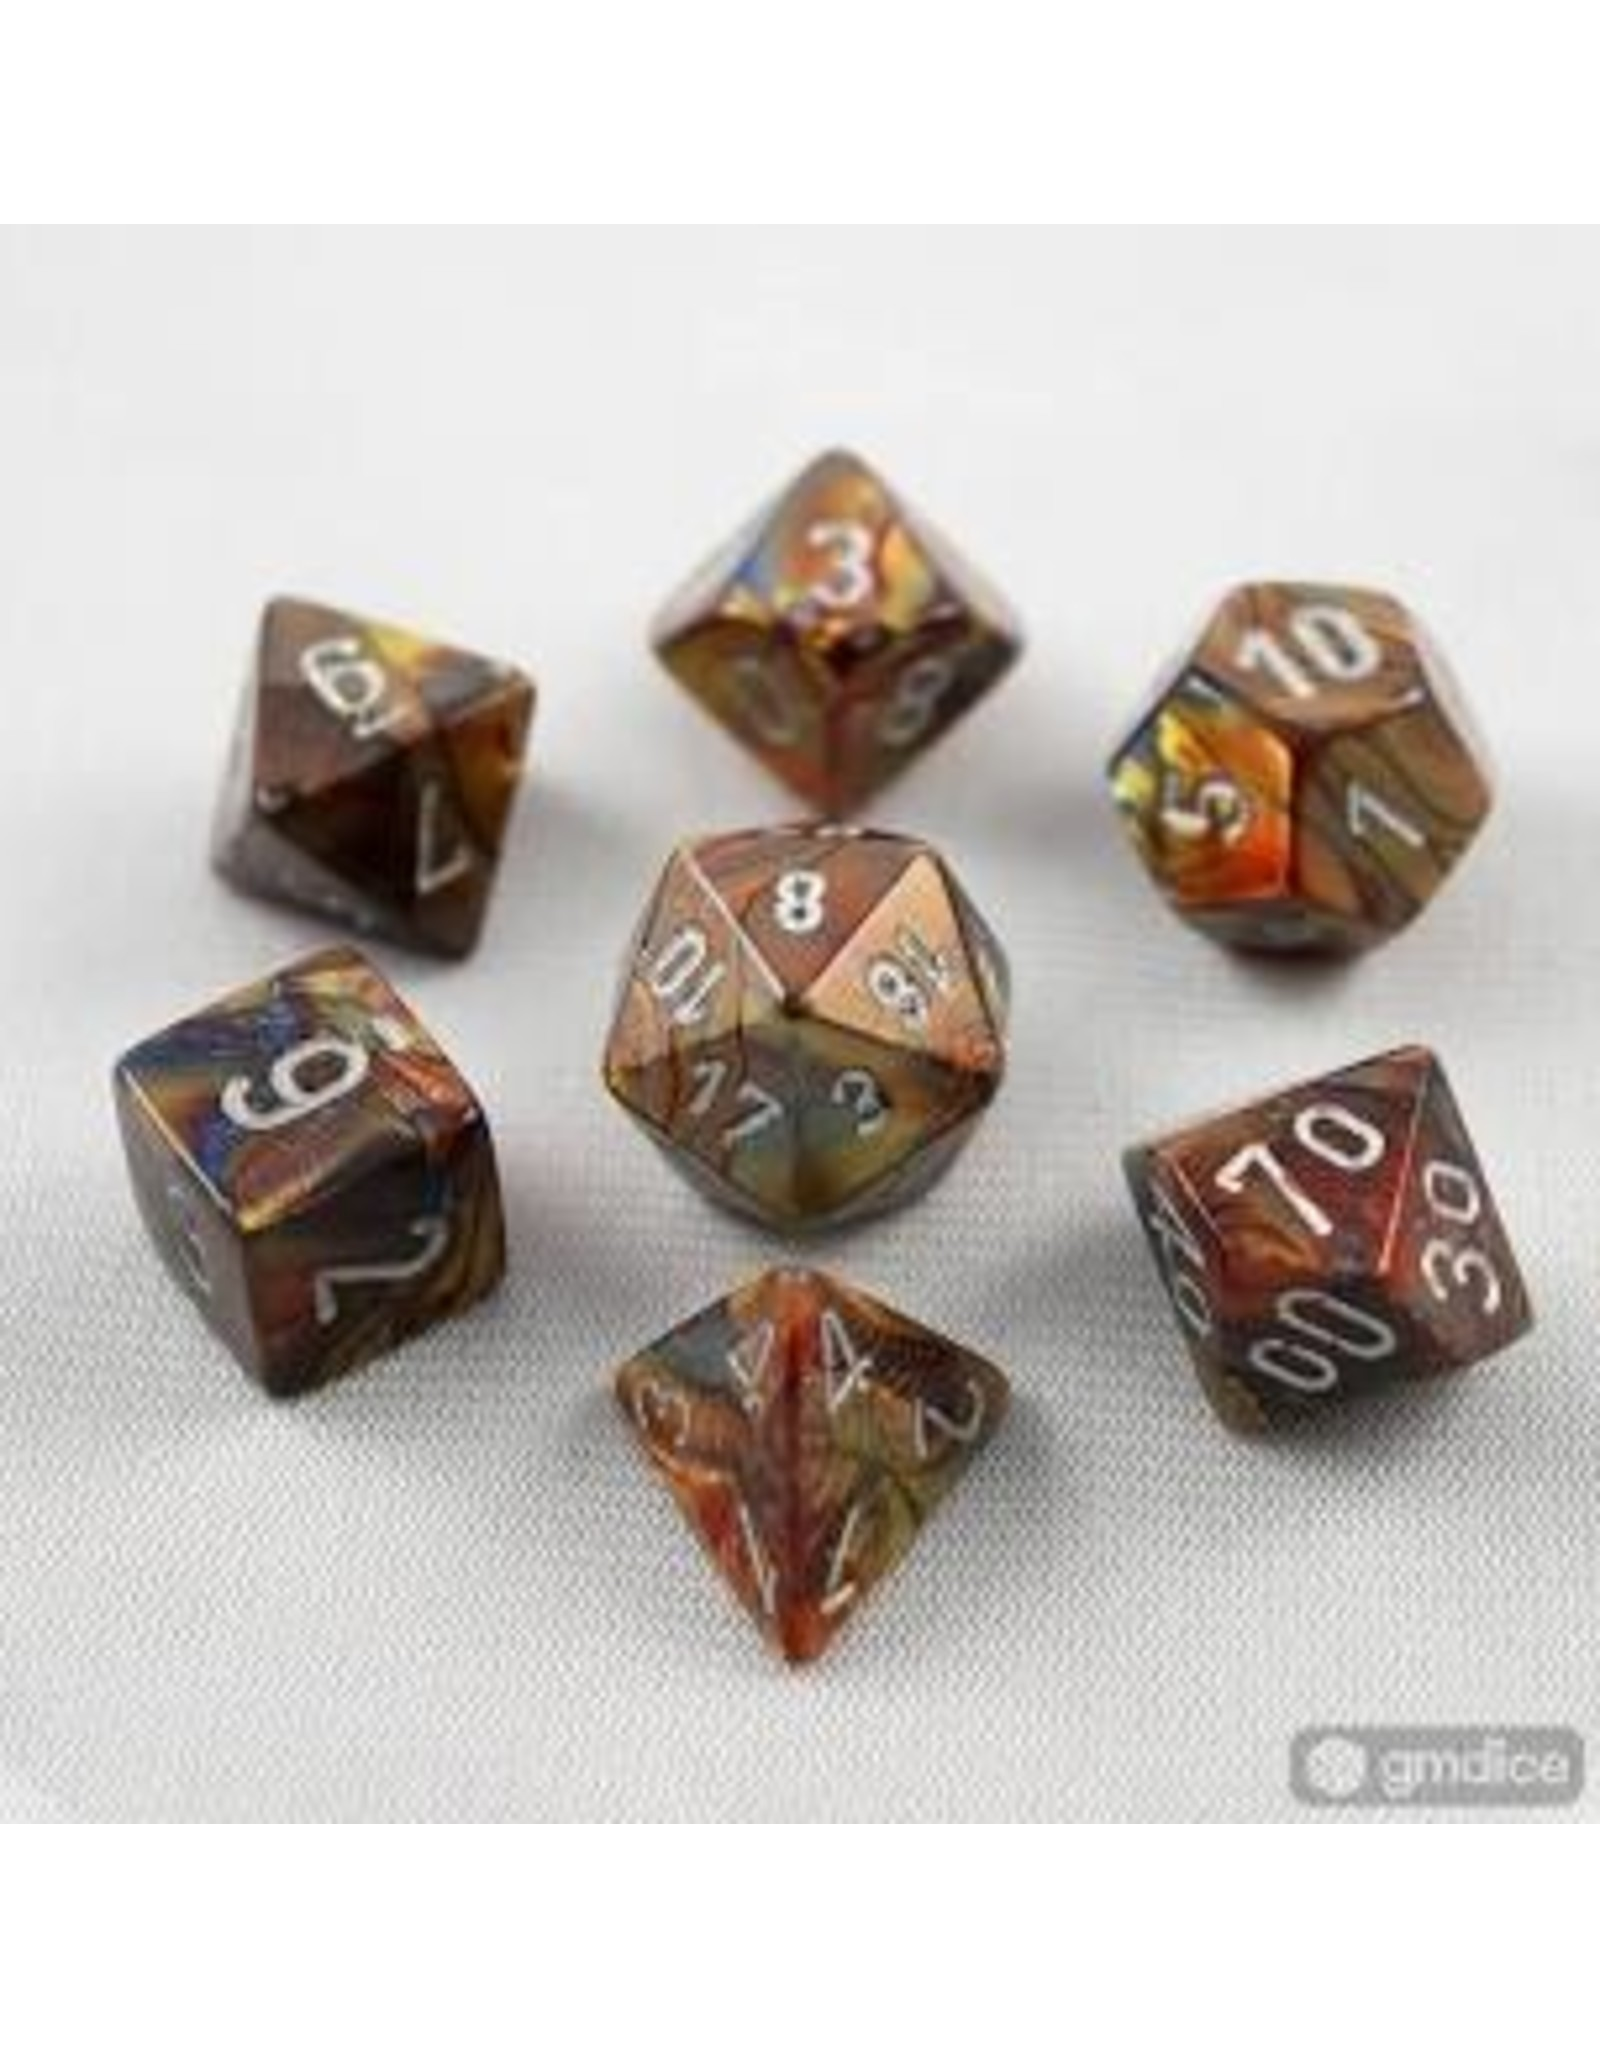 Chessex 7-Die  Lustrous Gold/Silver